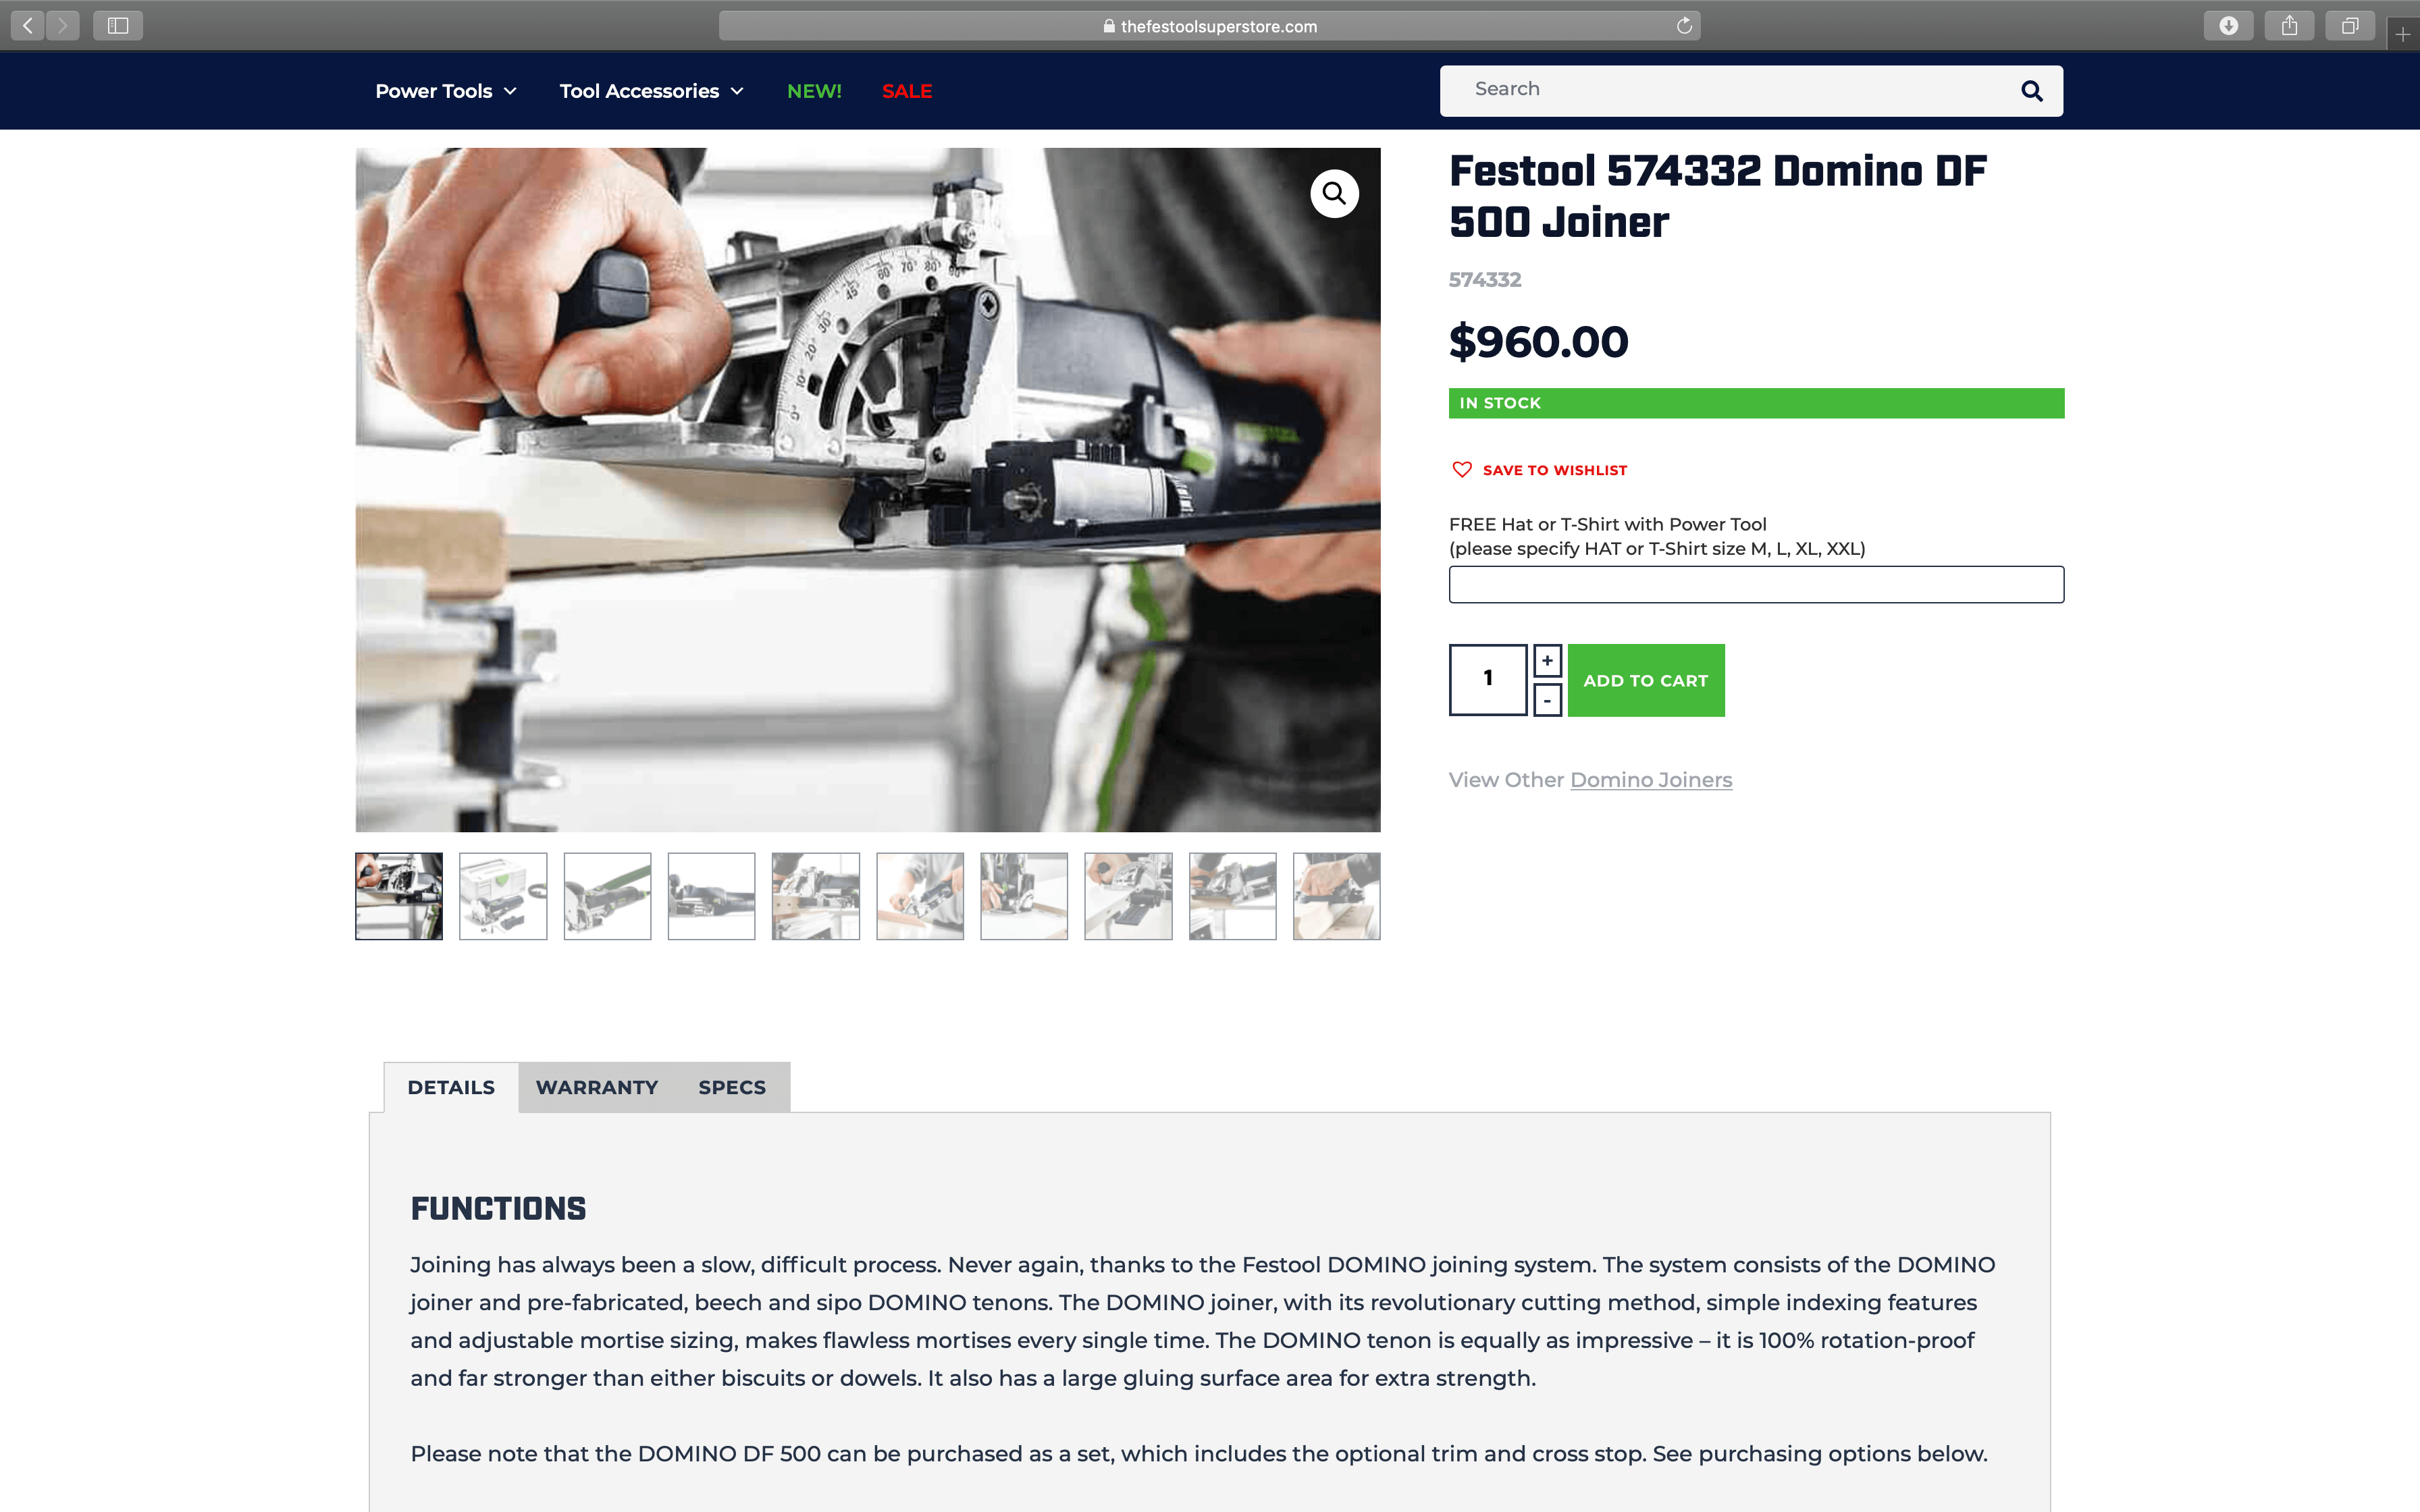 Festool Product Page | Toby Everett